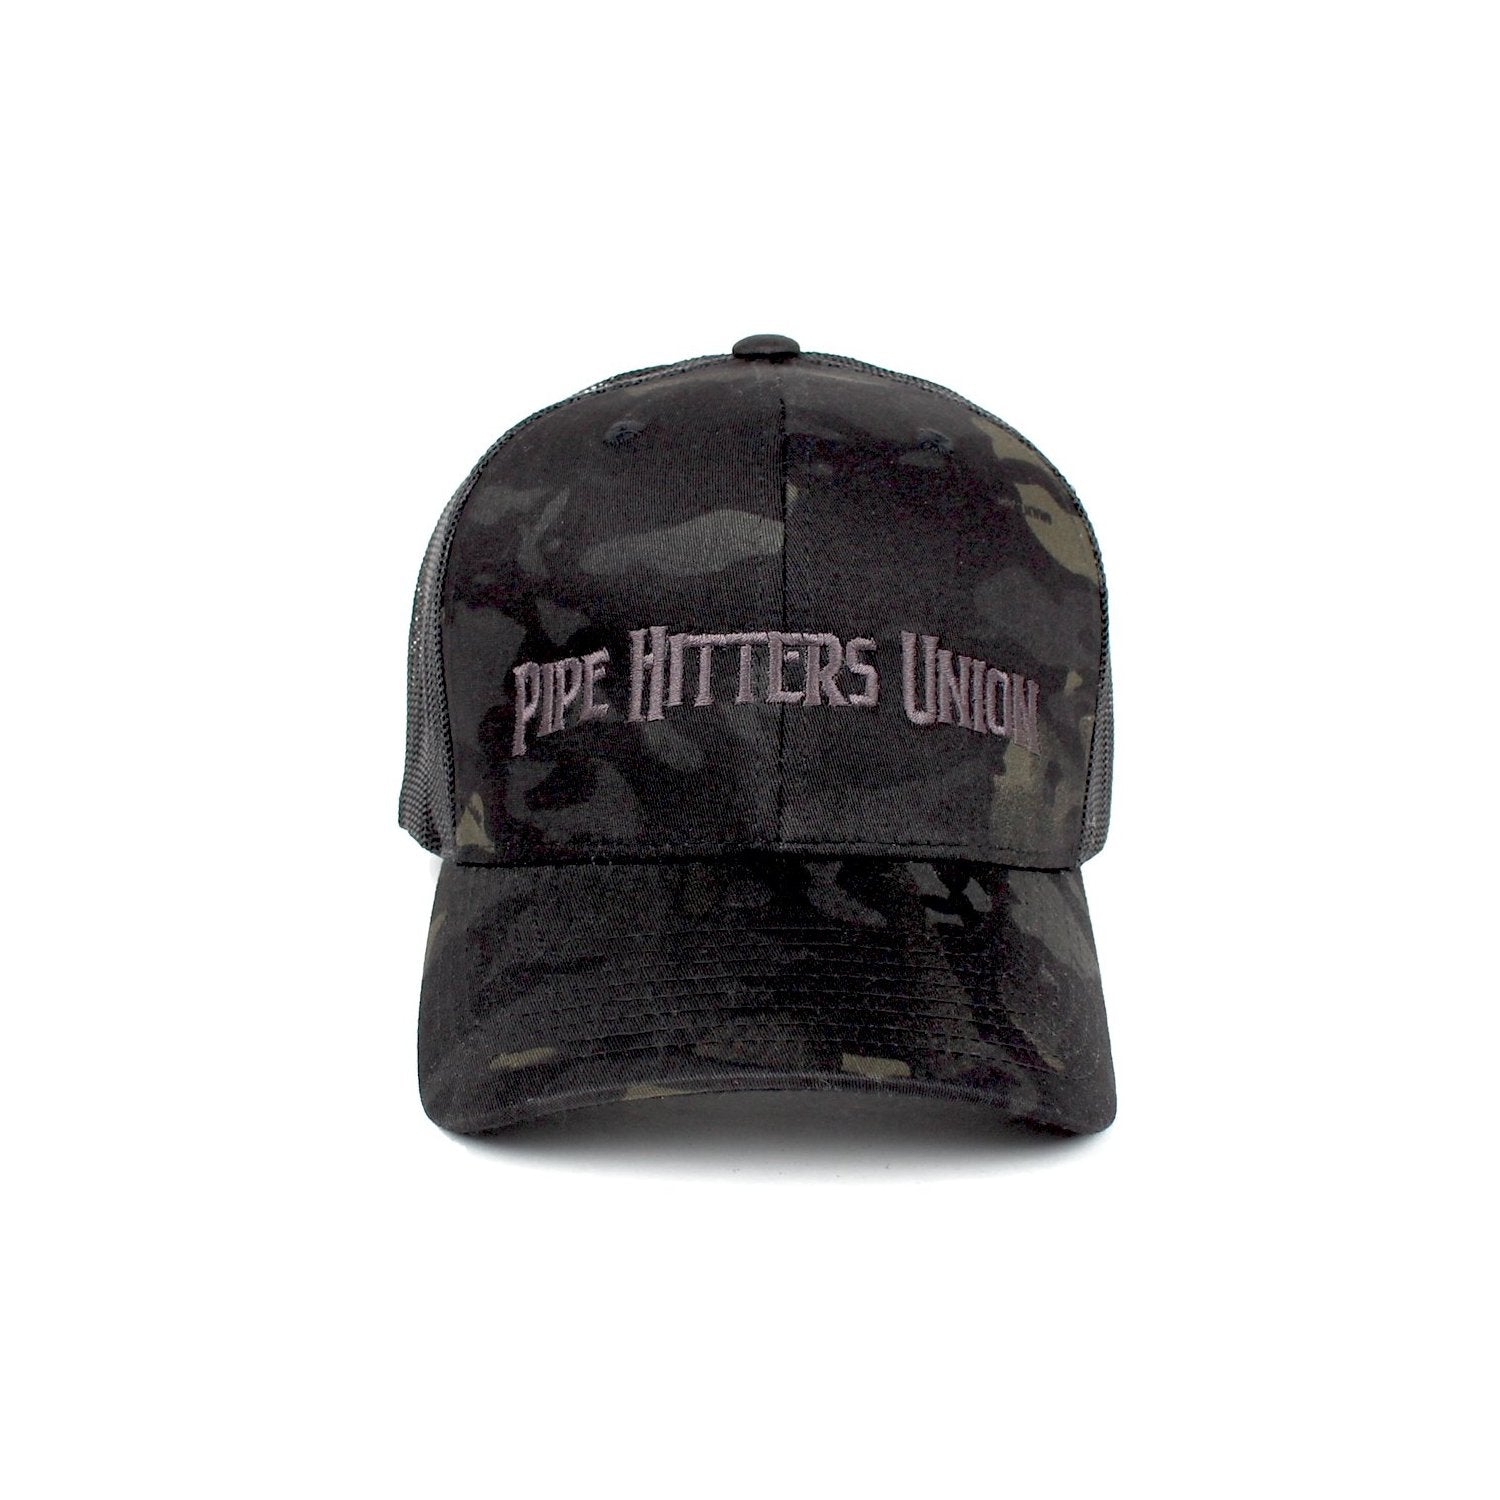 Pipe Hitters Union Trucker - Pipe Hitters Union